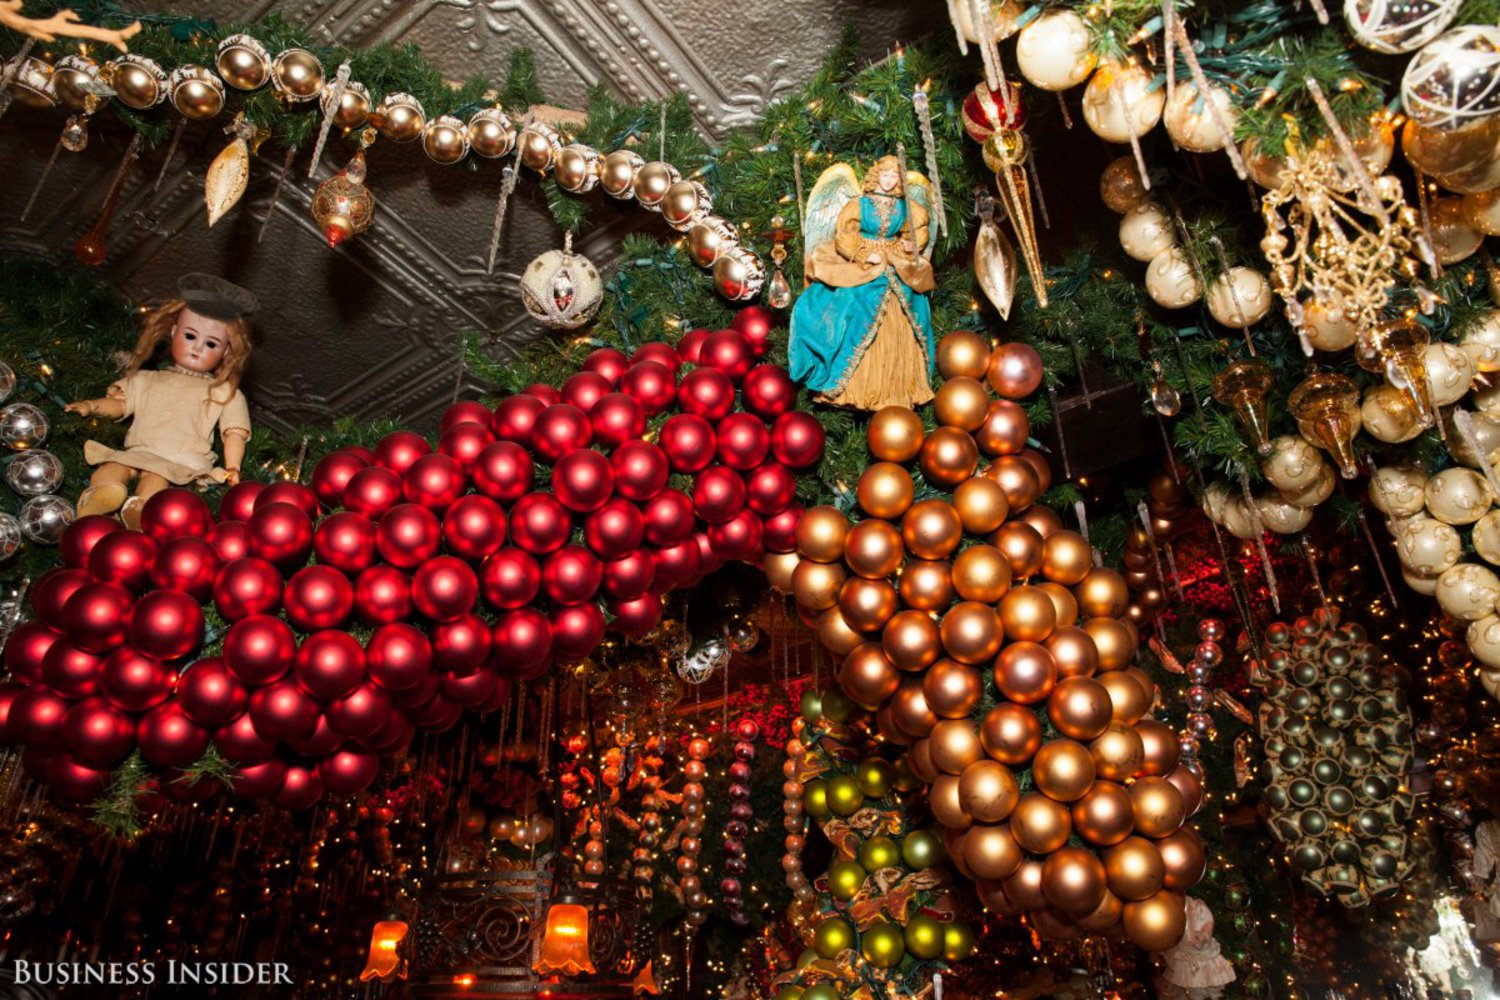 About 15,000 ornaments are hung from the ceiling.